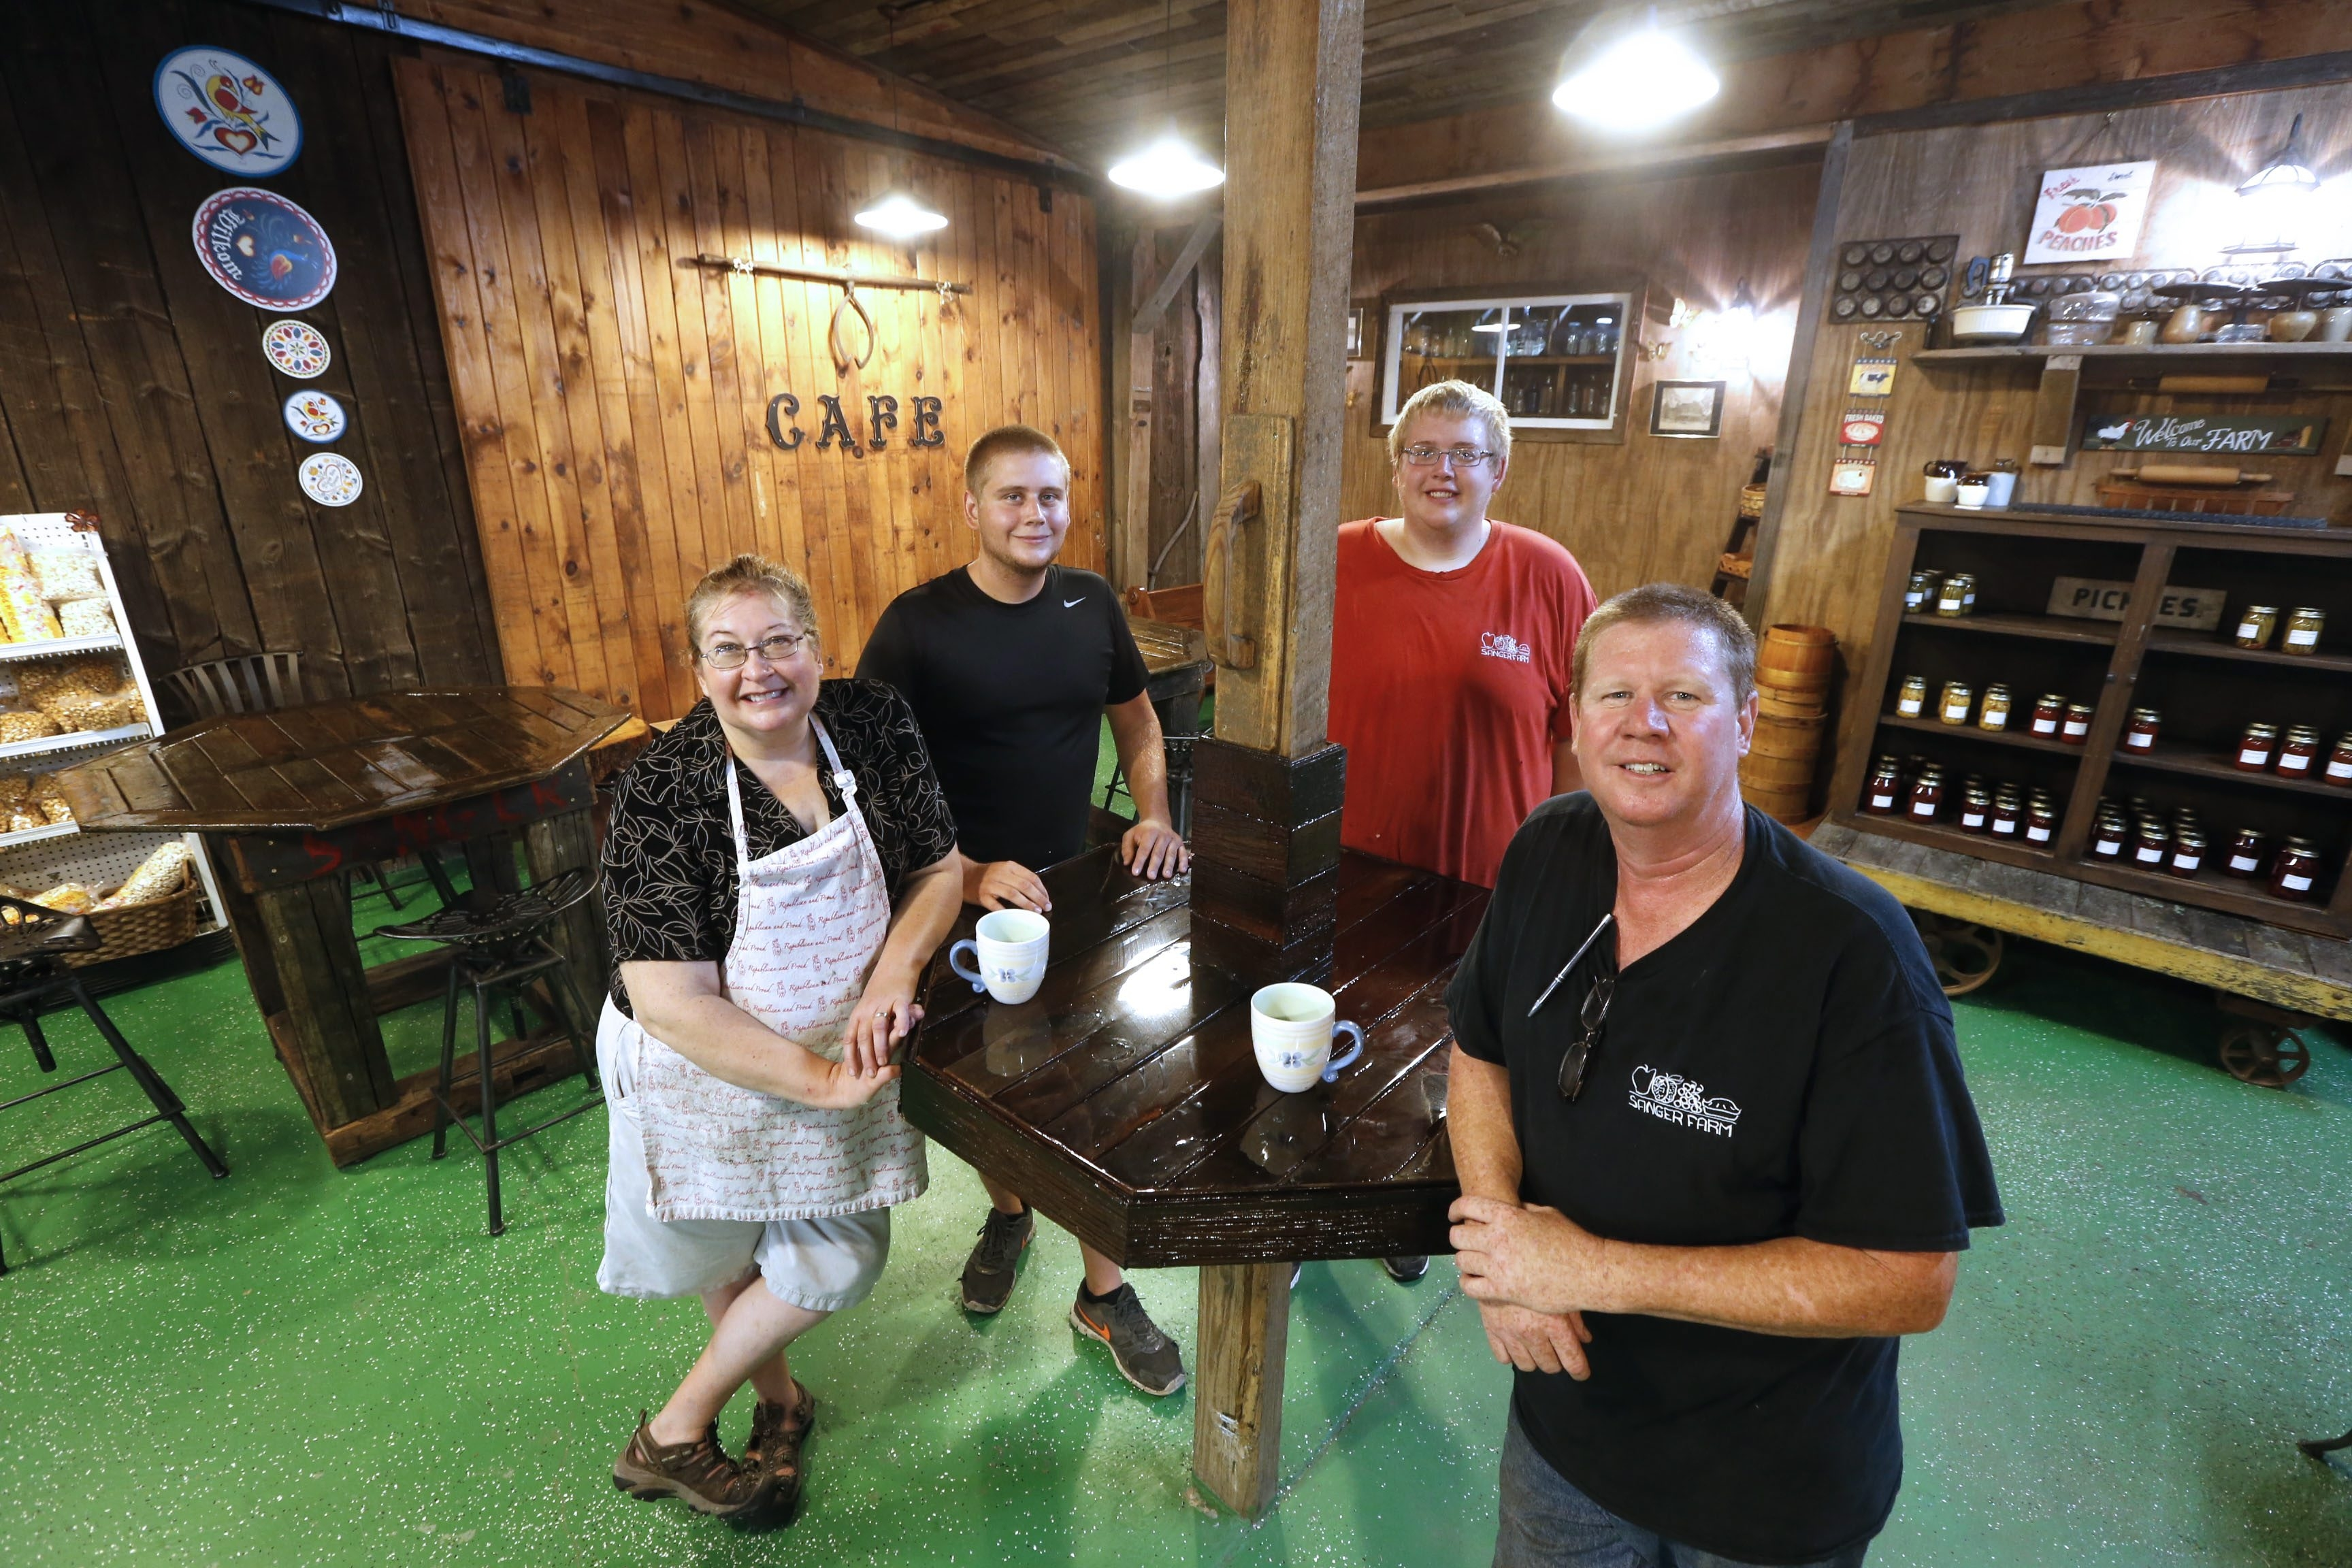 From left: Sandra Sanger Tuck, sons Claitan and Rogan, and her husband, Mike, are venturing into agritourism with their café.